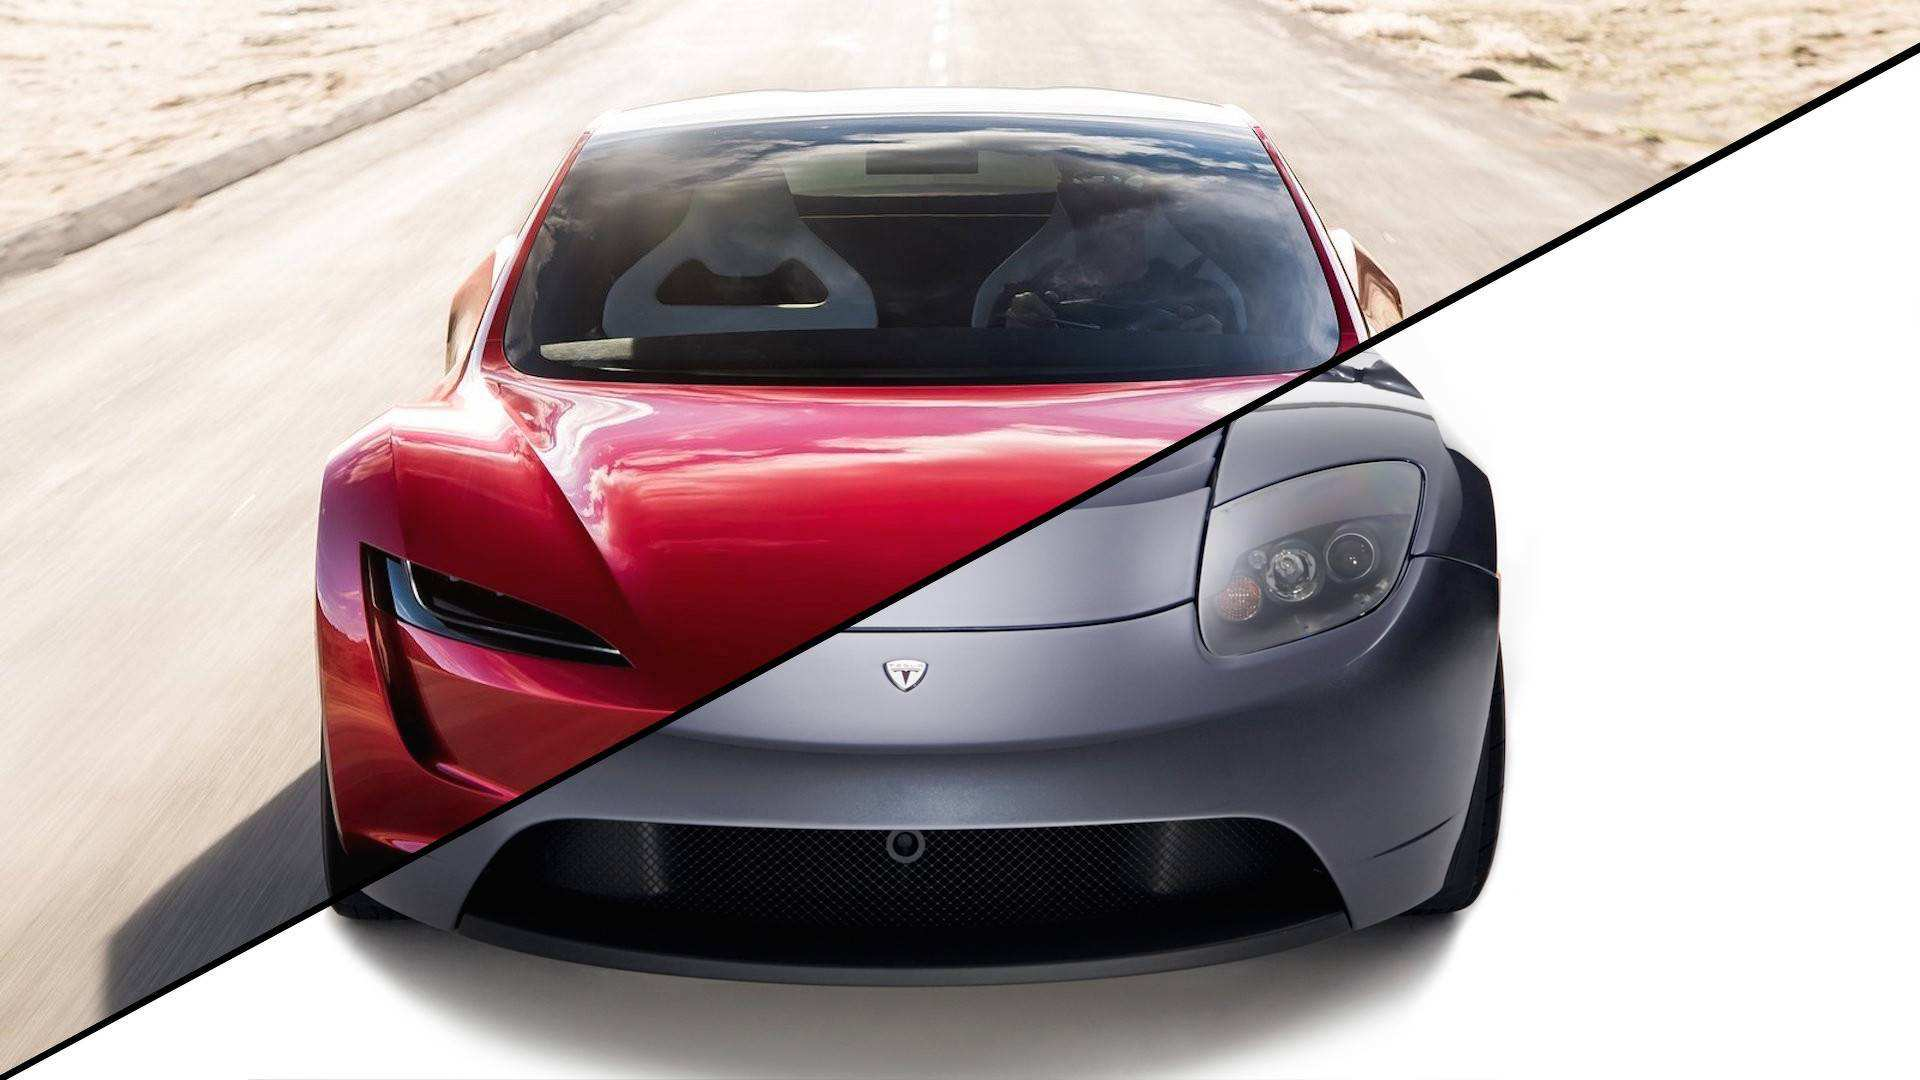 18 Best Review 2020 Tesla Roadster Weight 3 Overview for 2020 Tesla Roadster Weight 3